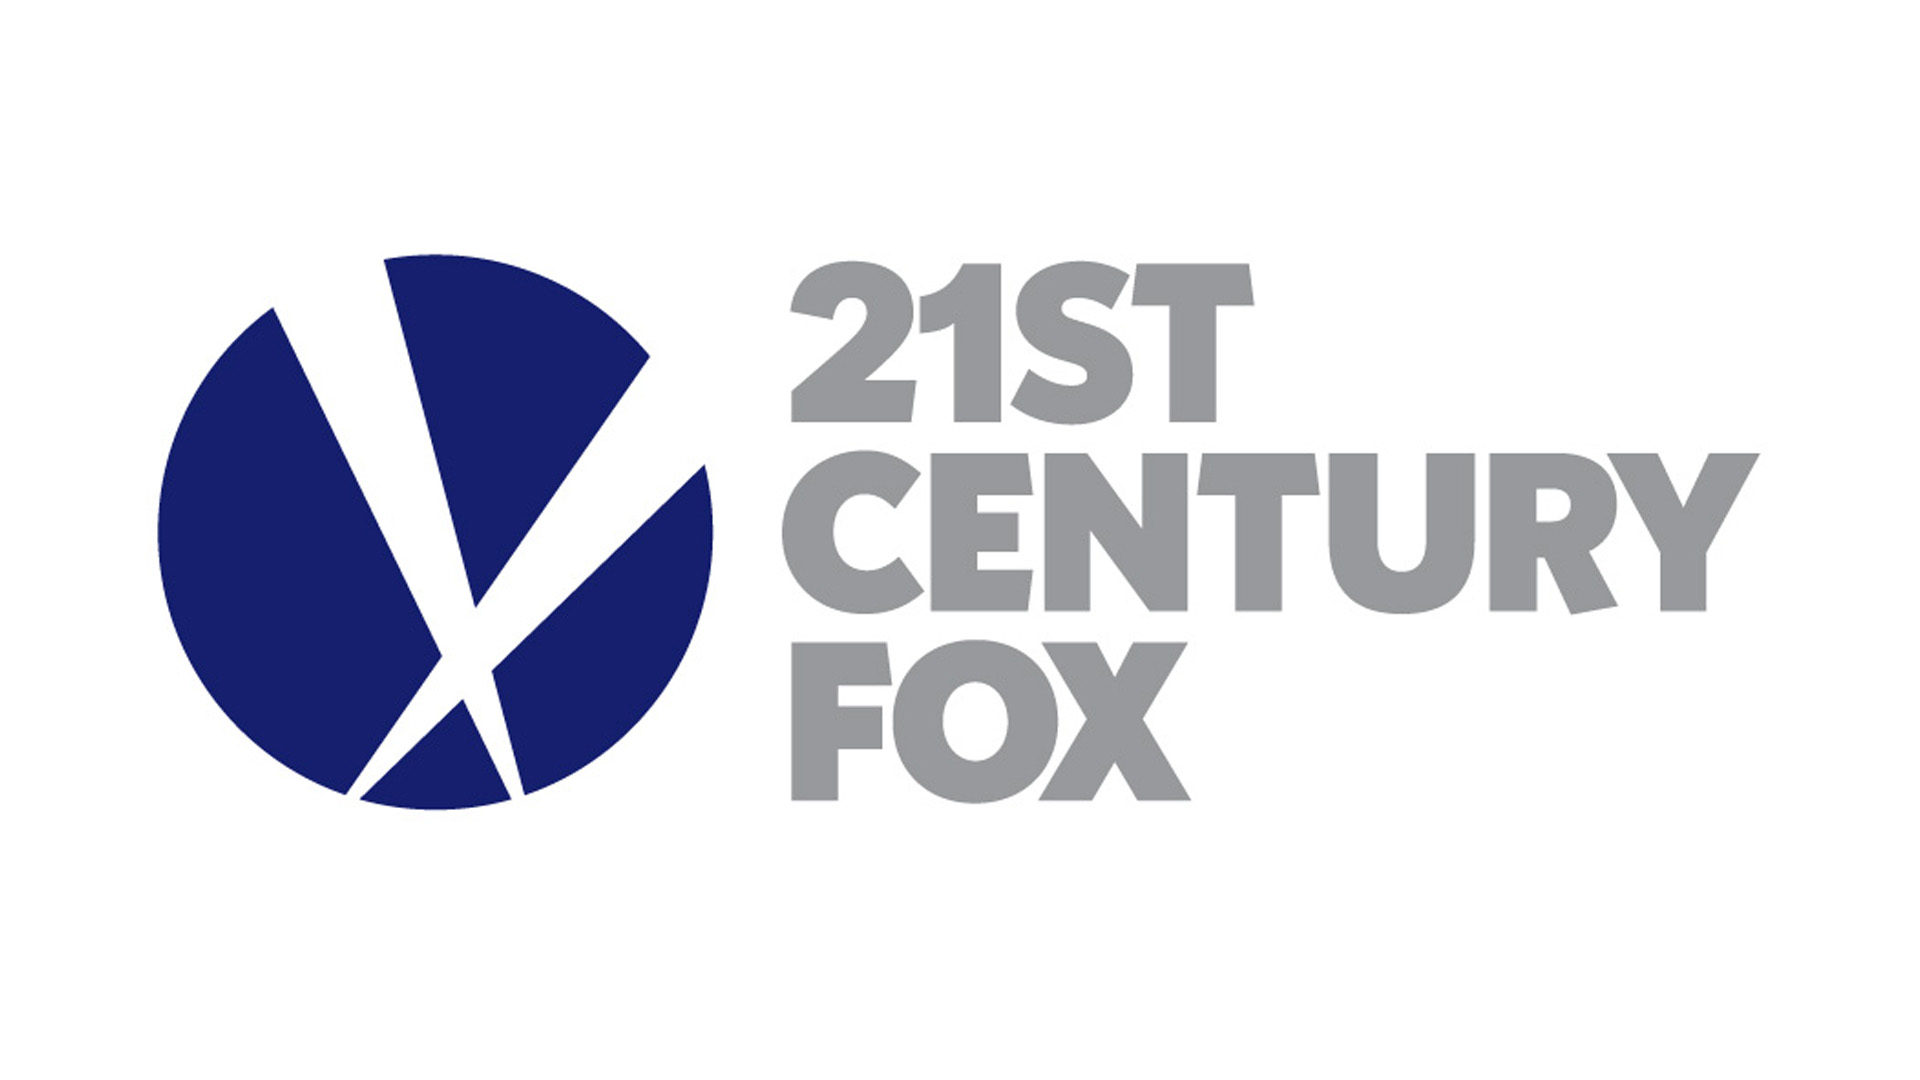 Cover image for Why AT&T is Renewing Its Fox Distribution Relationship